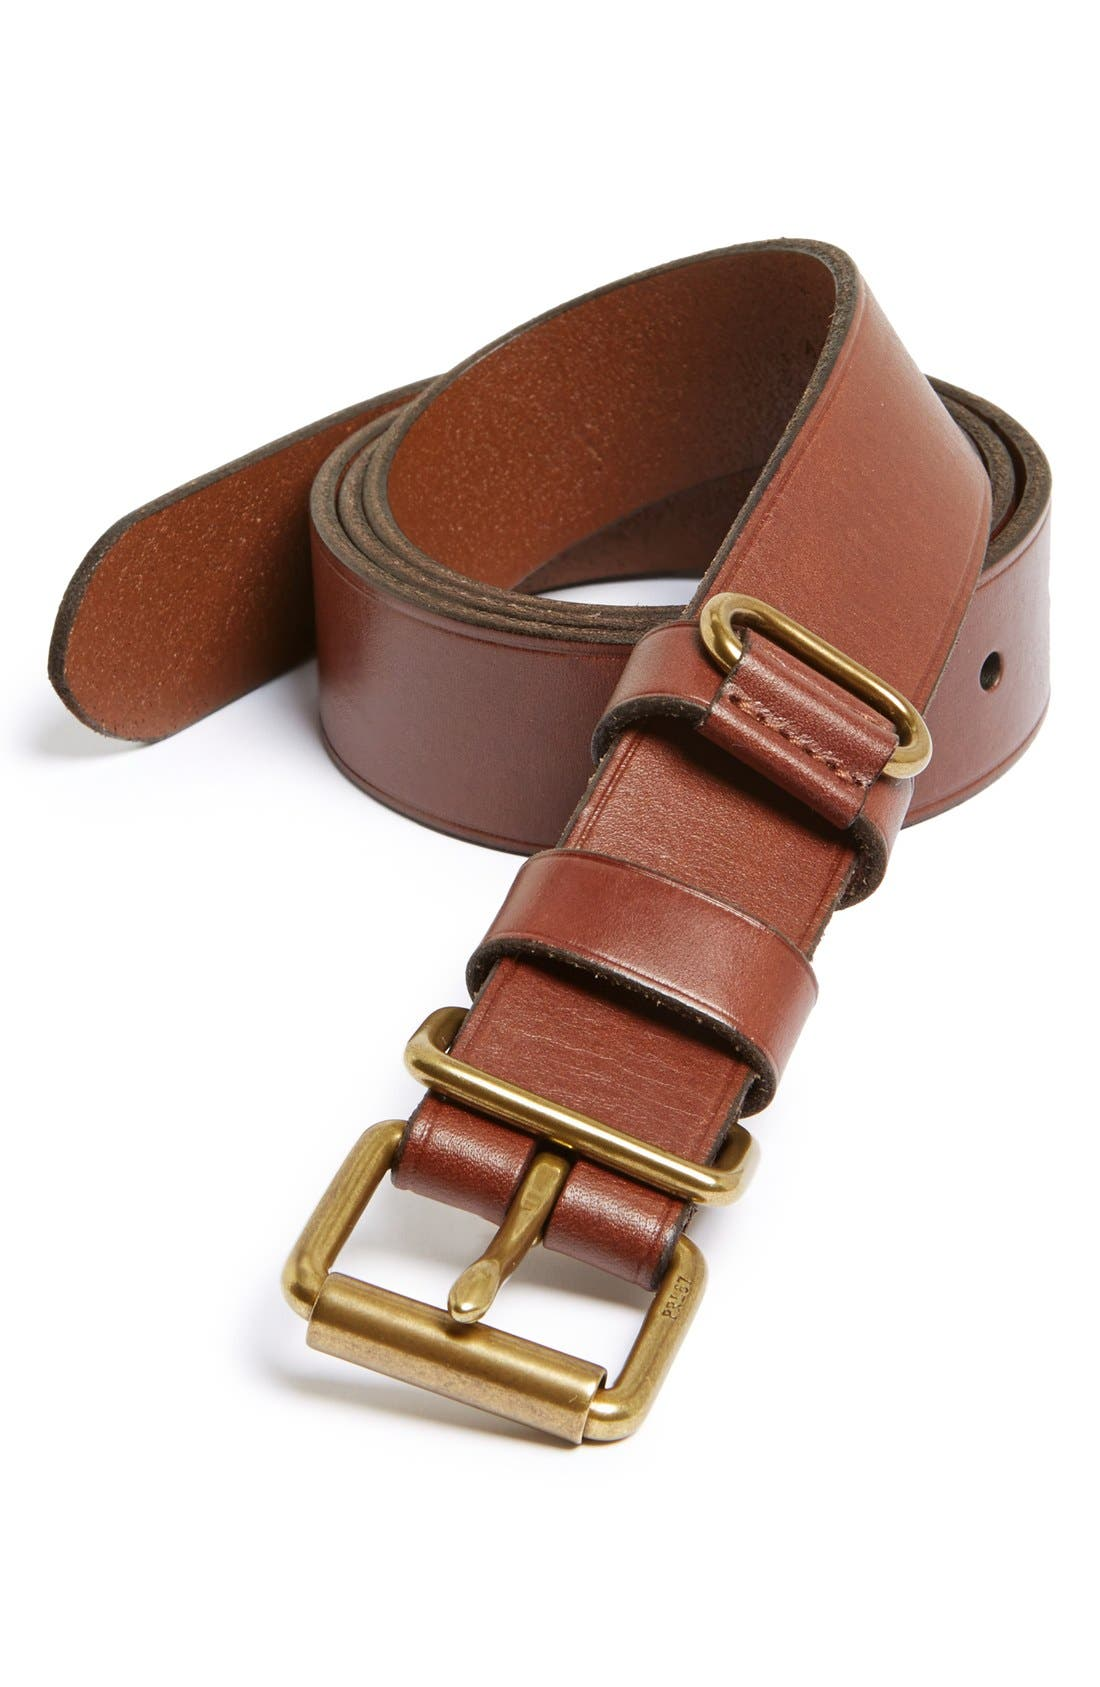 Alternate Image 1 Selected - Polo Ralph Lauren 'Suffolk' Leather Belt